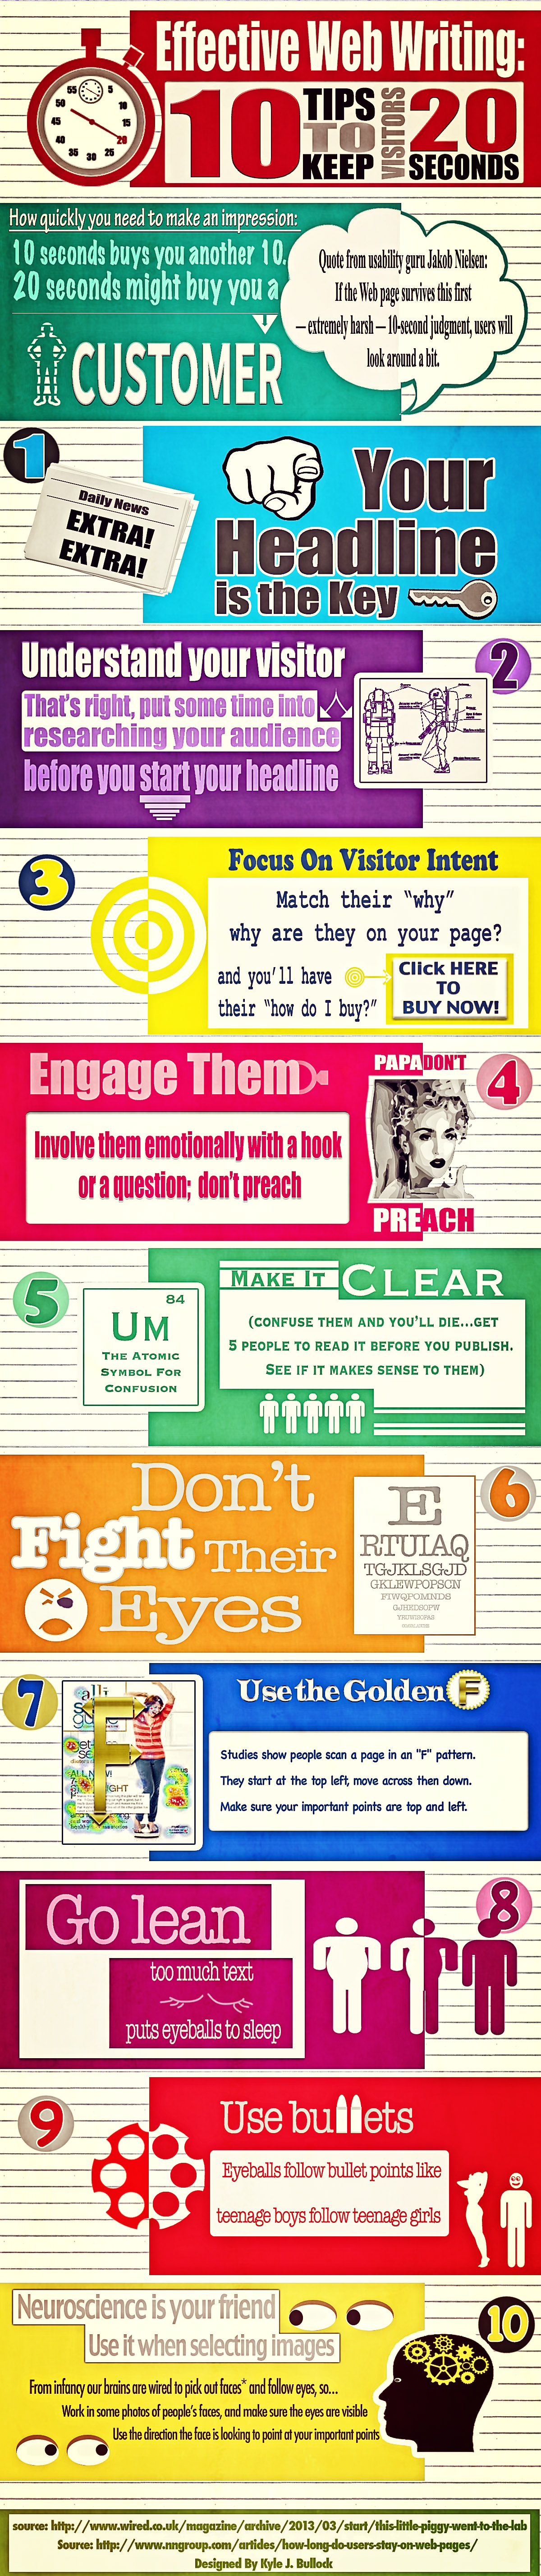 info-graphic-writing-for-the-web